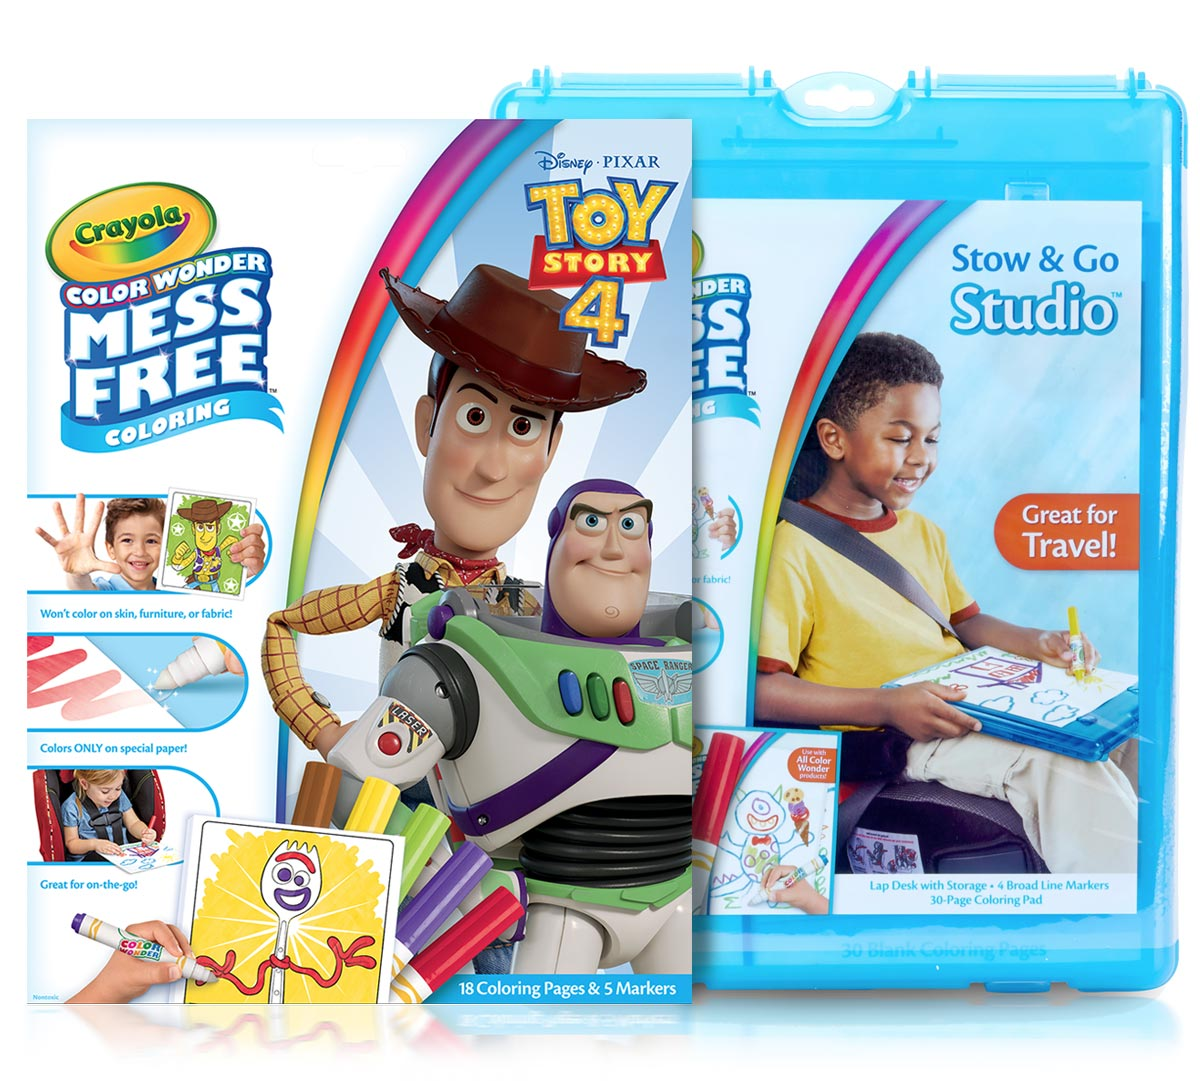 Color Wonder Mess Free Toy Story